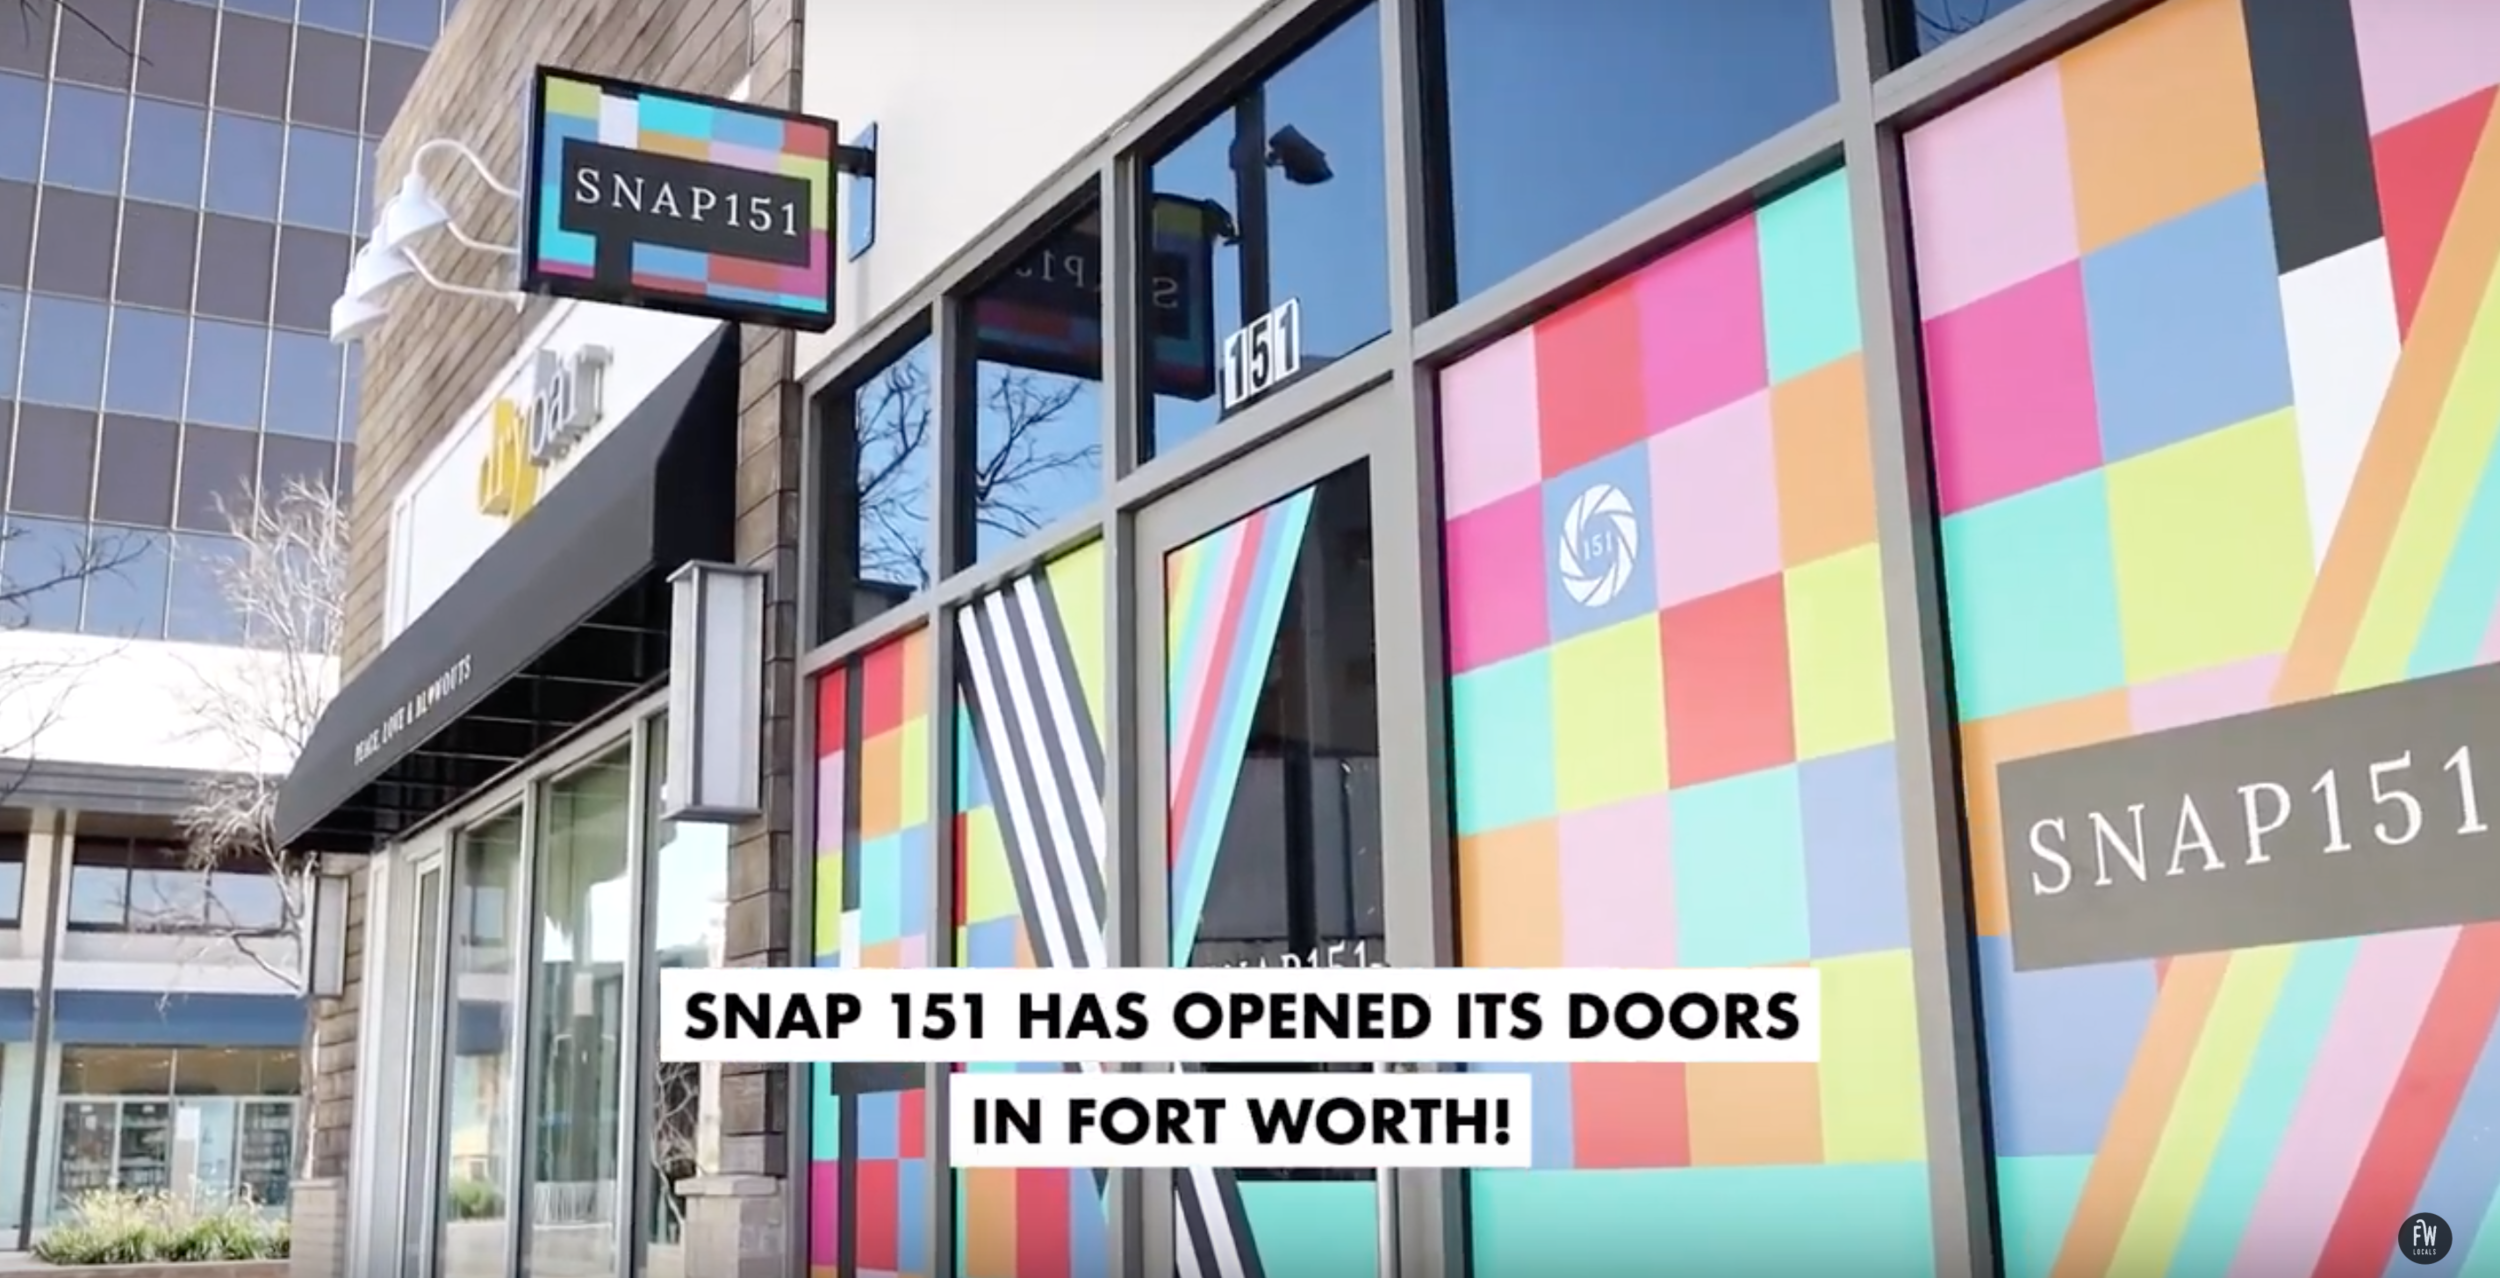 Fort Worth Locals Collab - By: Javier Rodriguez